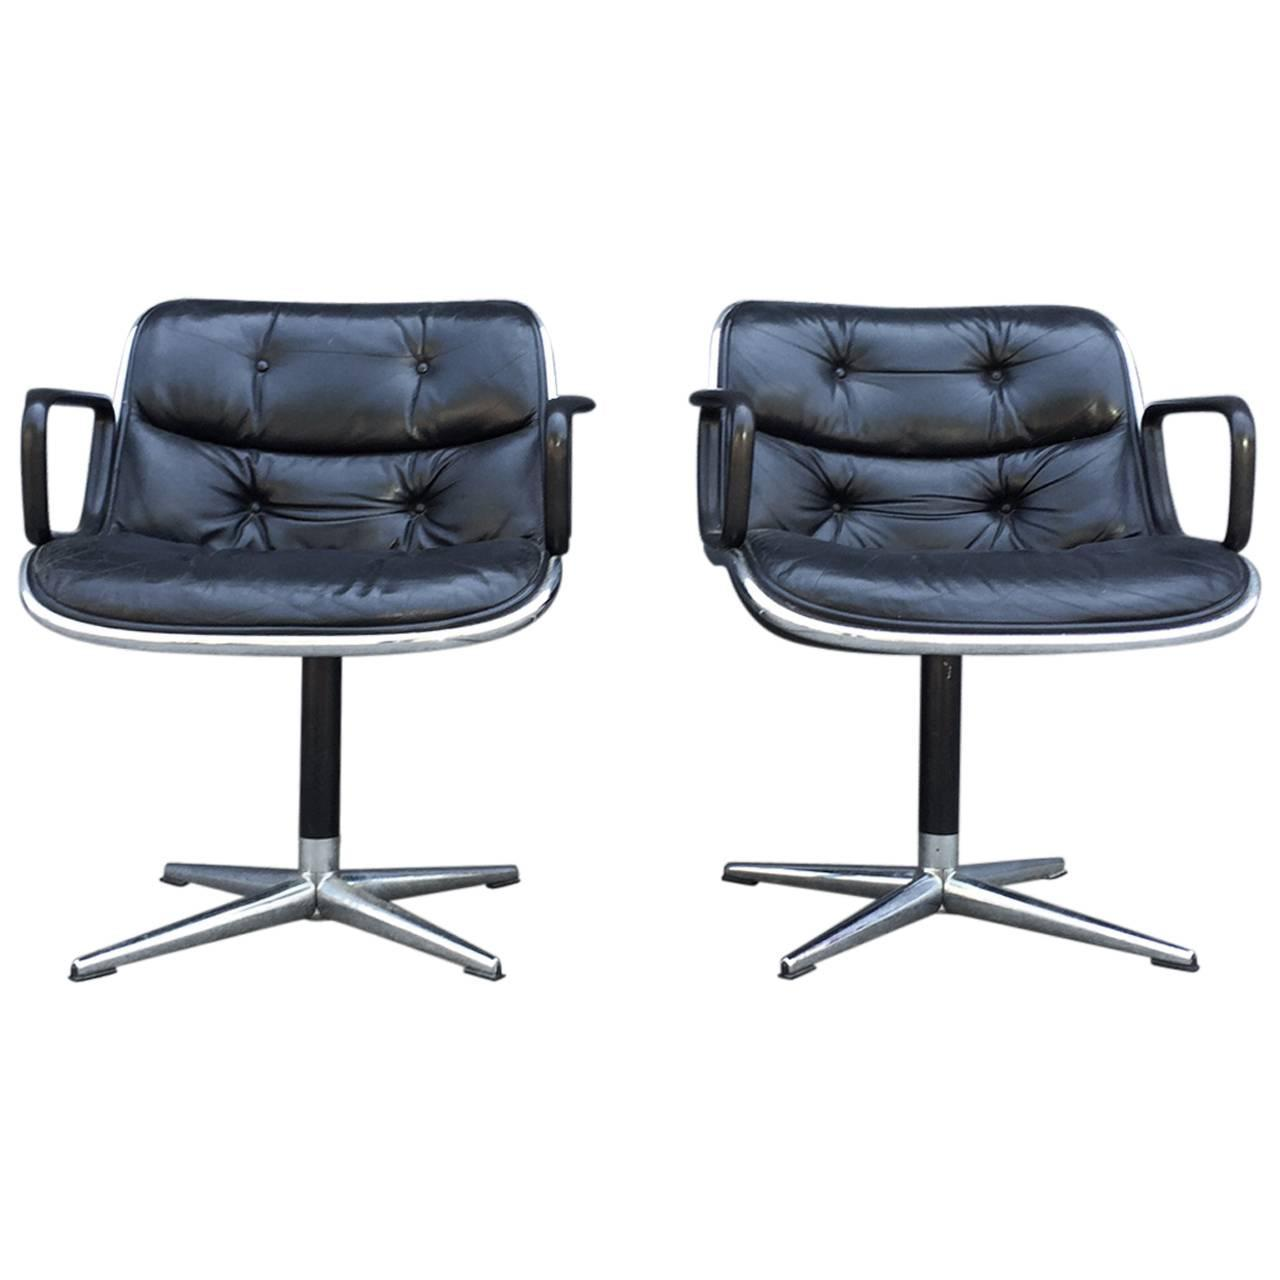 category chair regina online store plus hbi office chairs